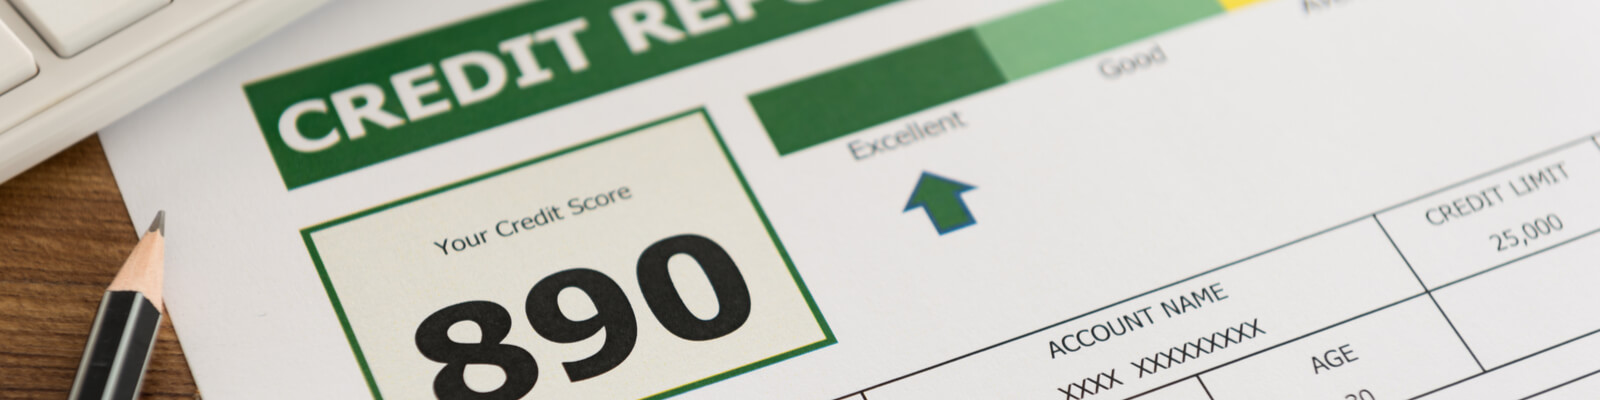 what credit score is needed for an sba loan - feature image